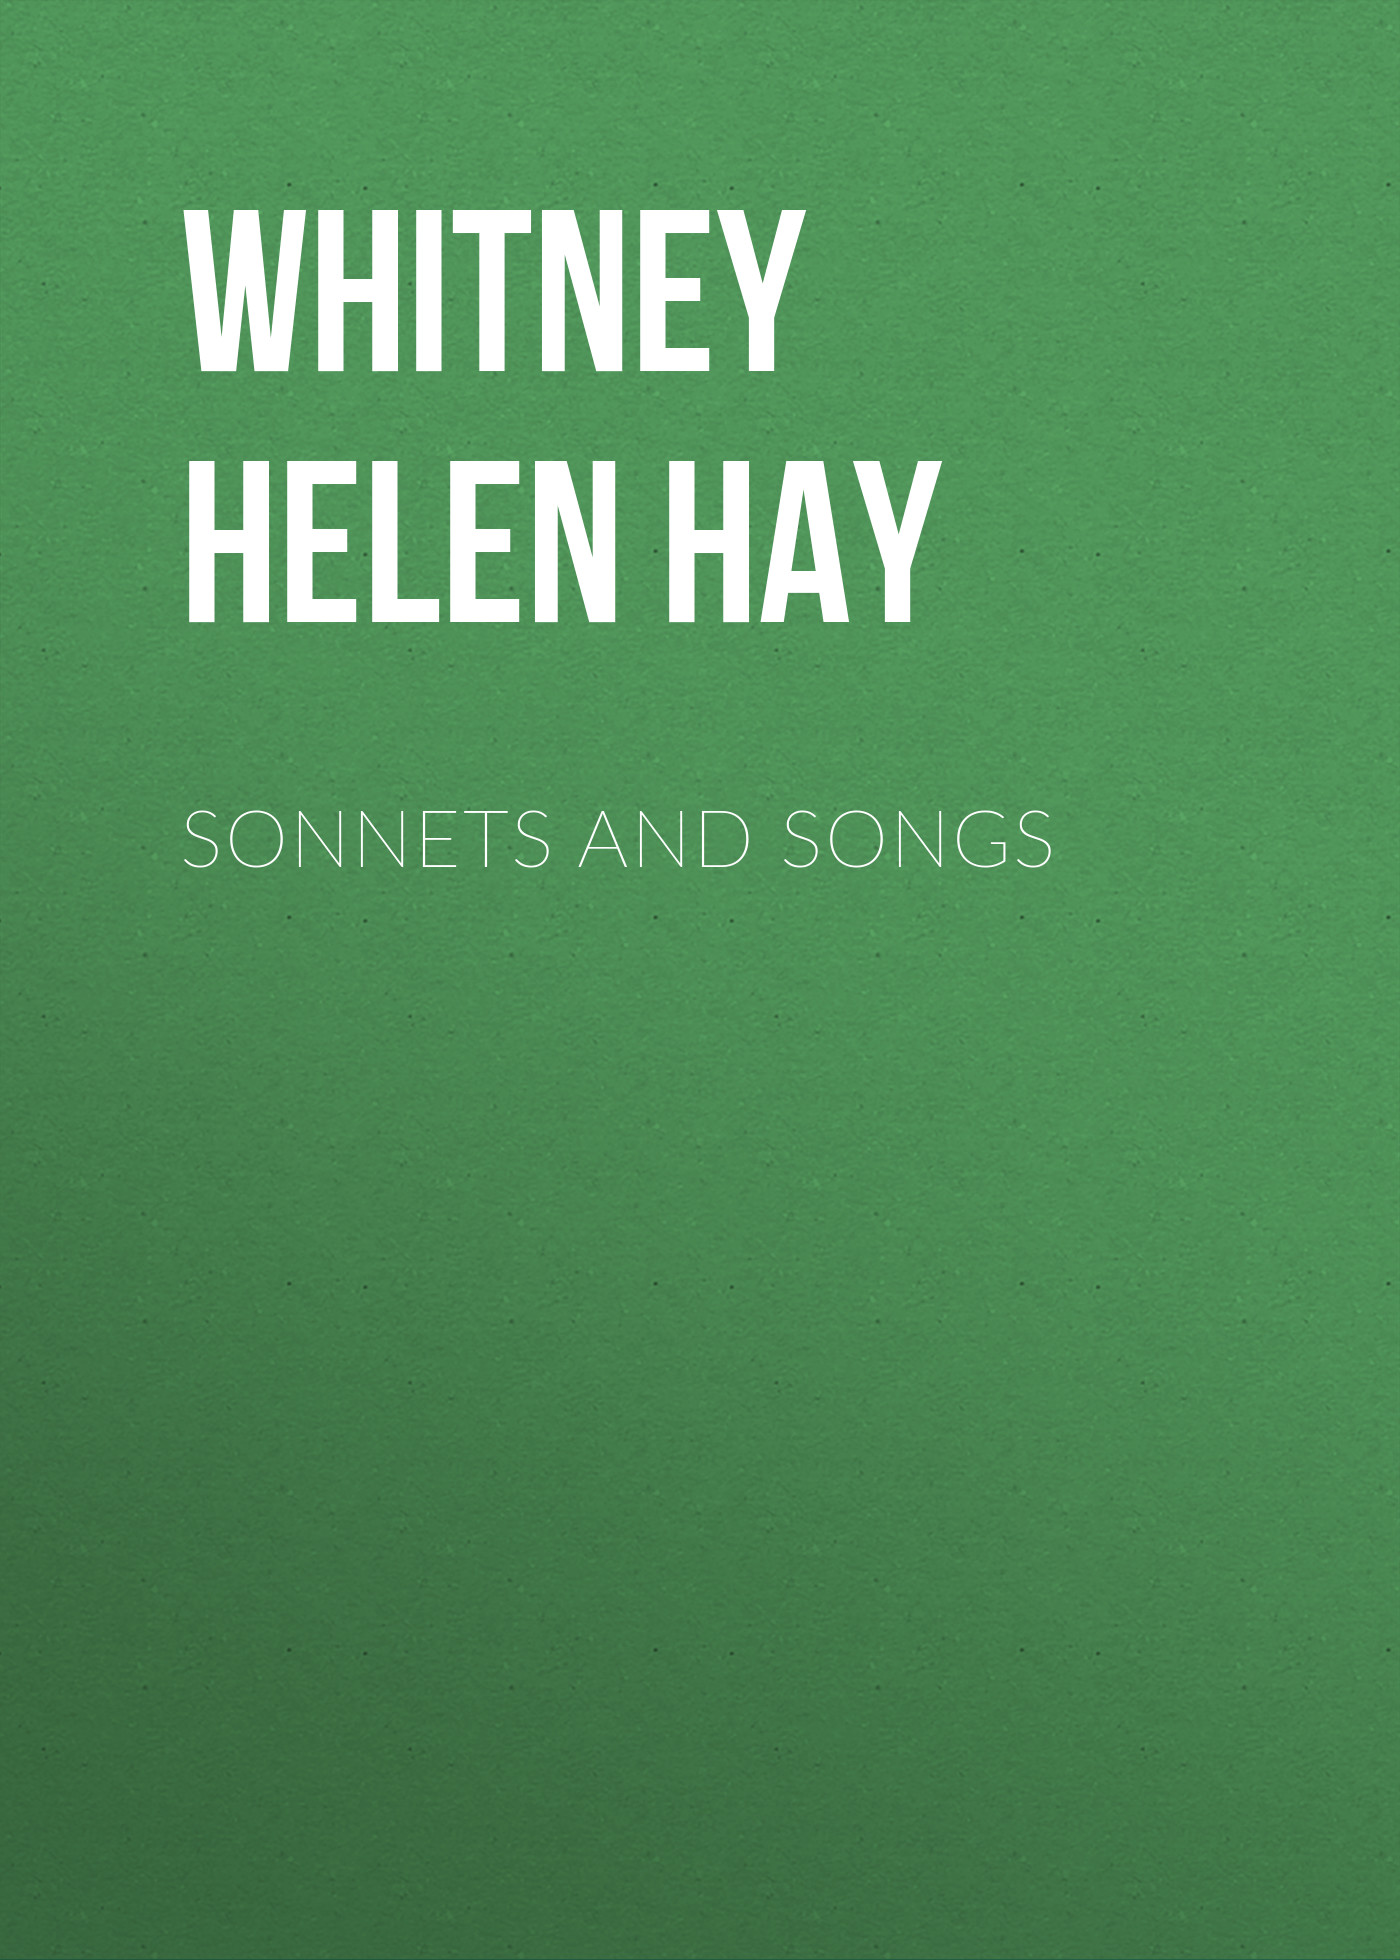 Whitney Helen Hay Sonnets and Songs